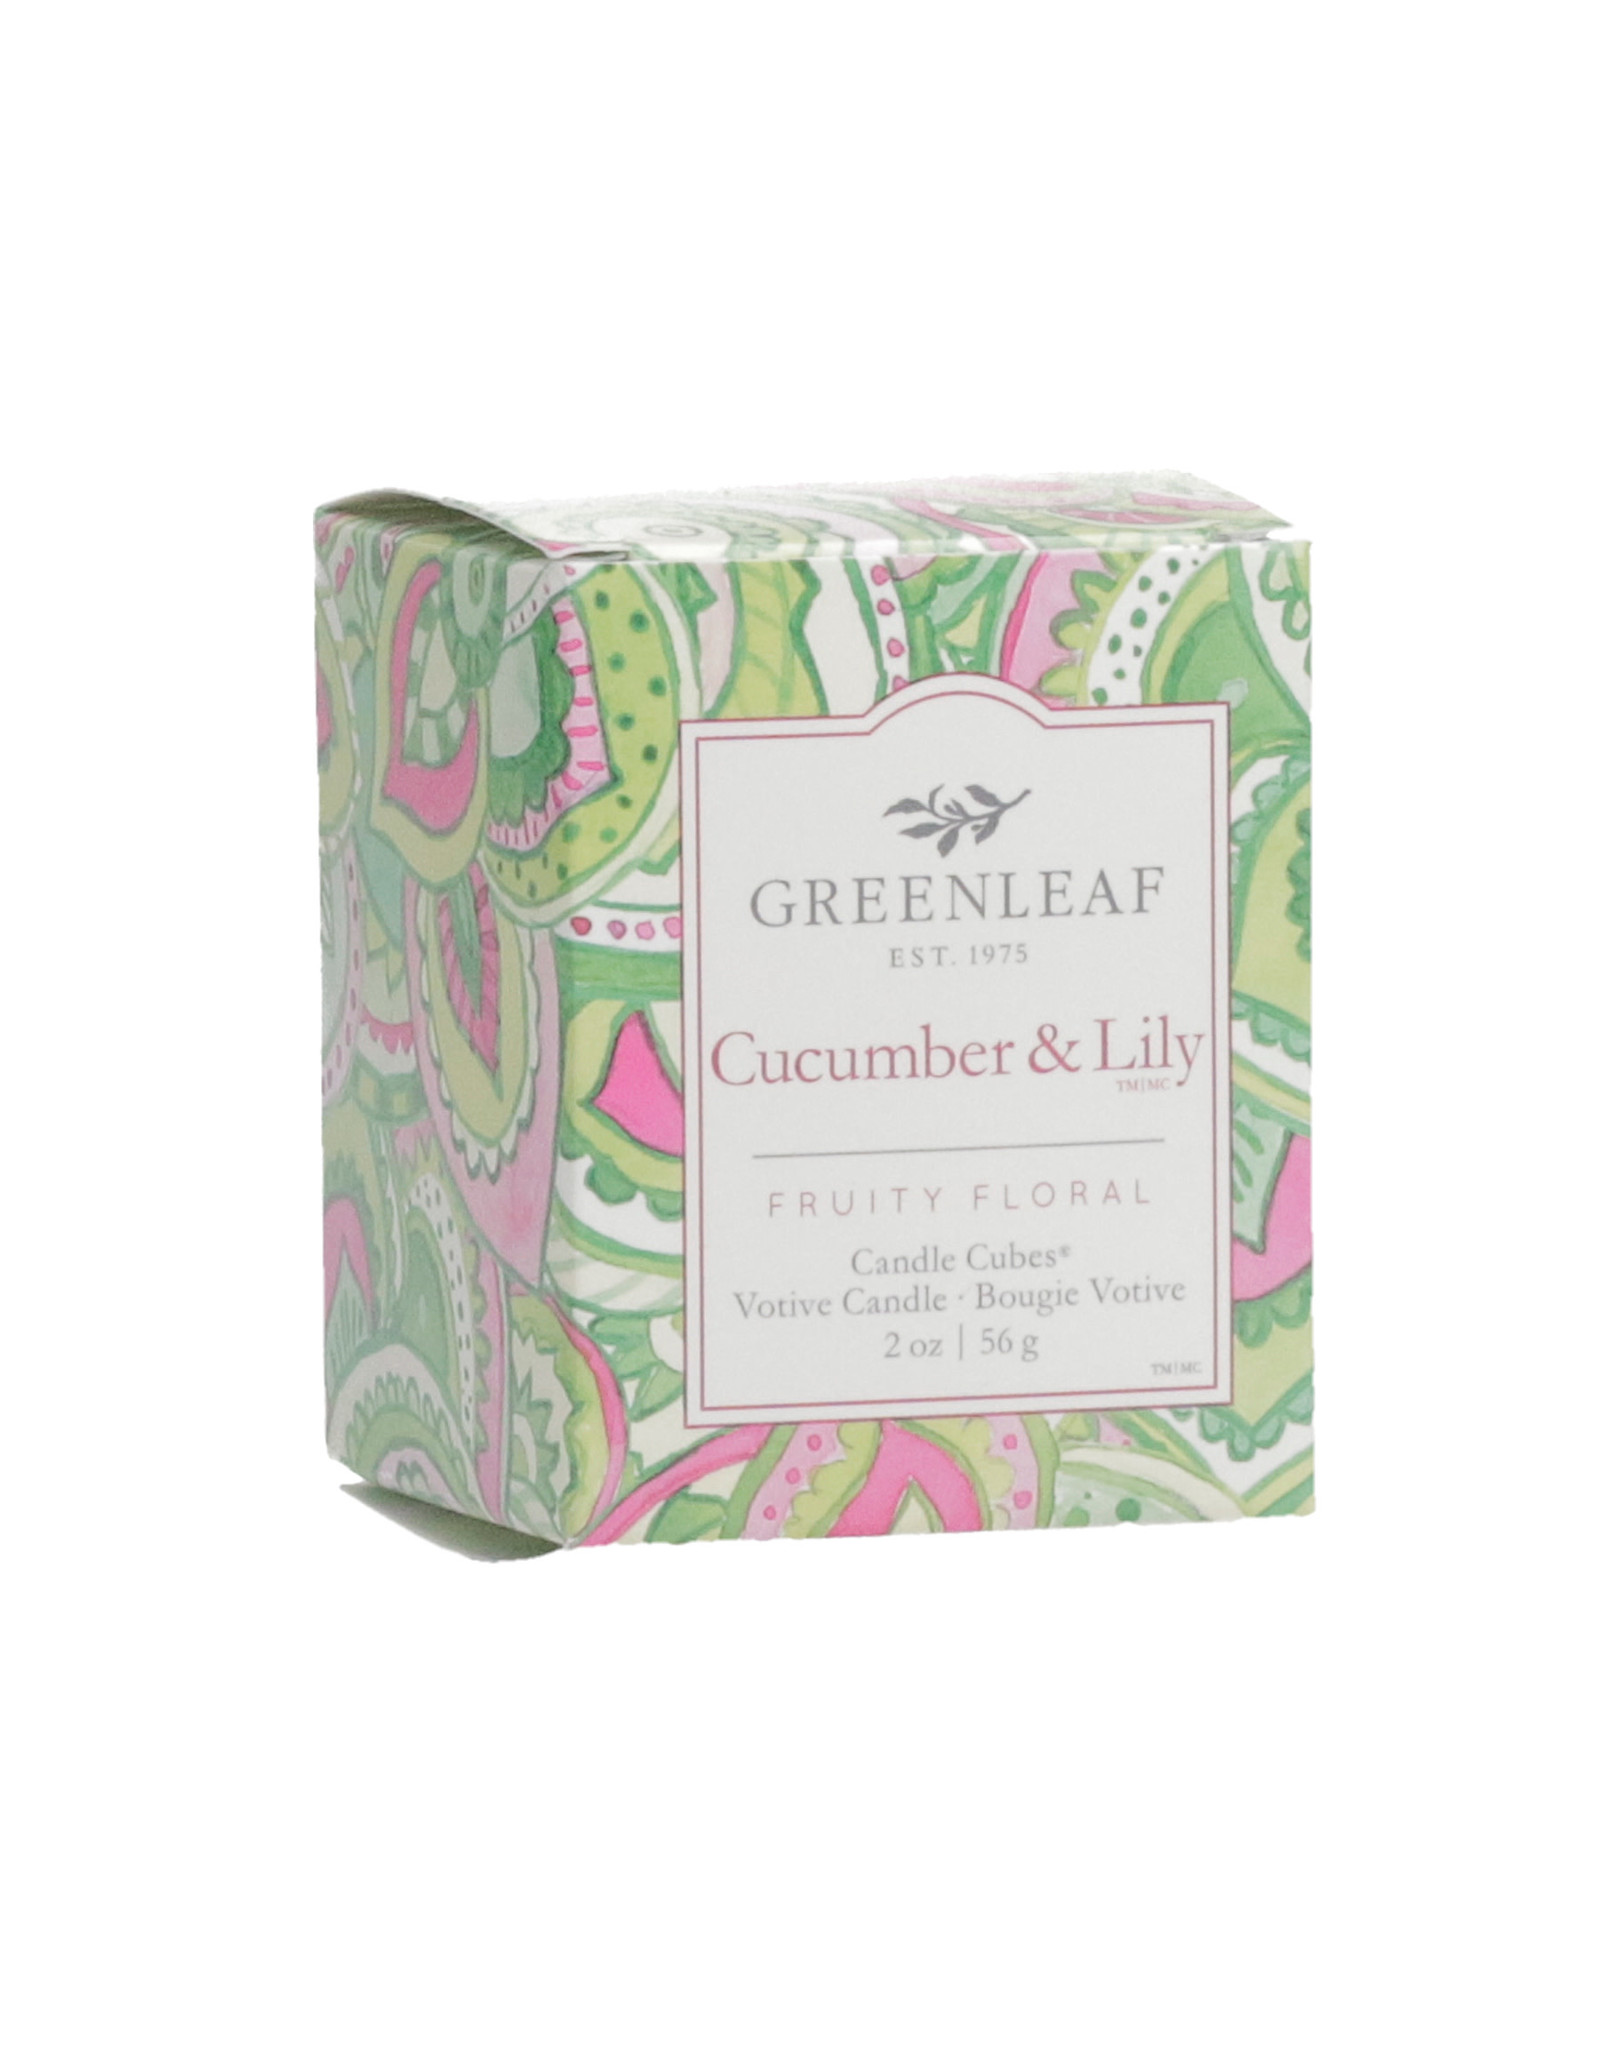 Greenleaf Cucumber and Lily Candle Votive